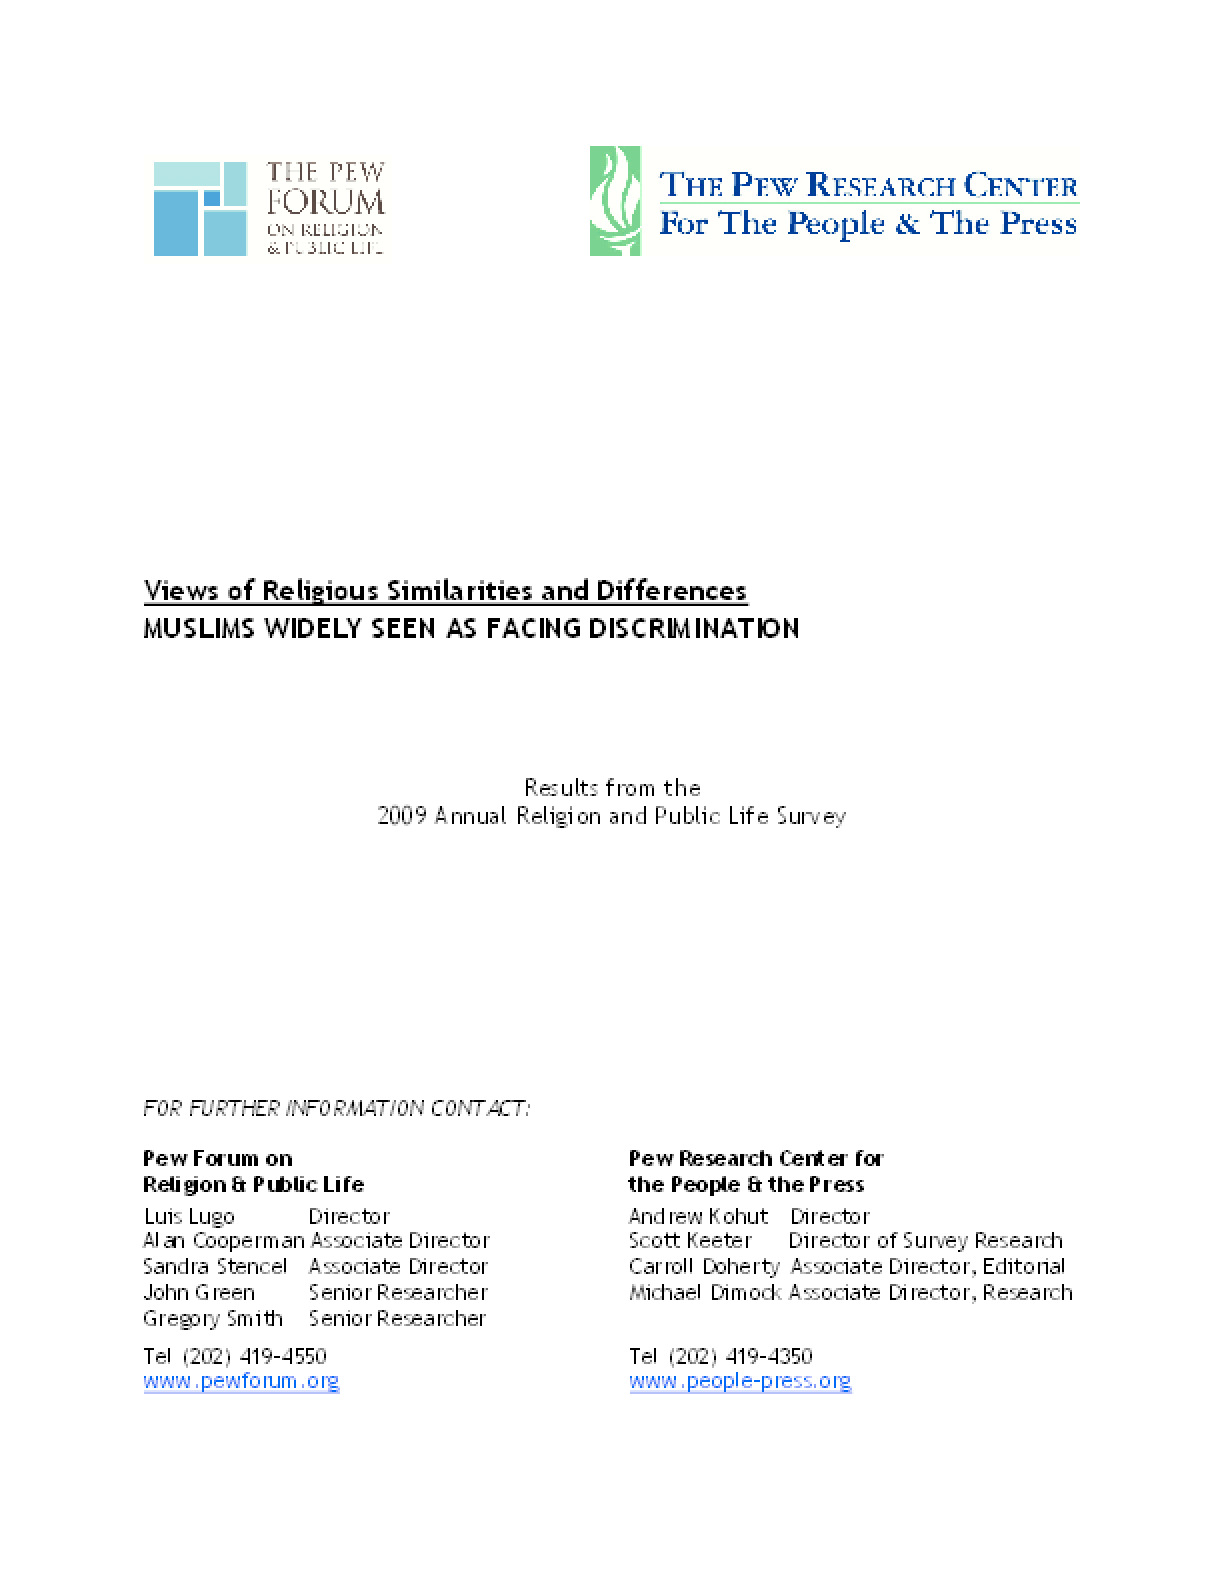 Views of Religious Similarities and Differences: Results From the 2009 Annual Religion and Public Life Survey